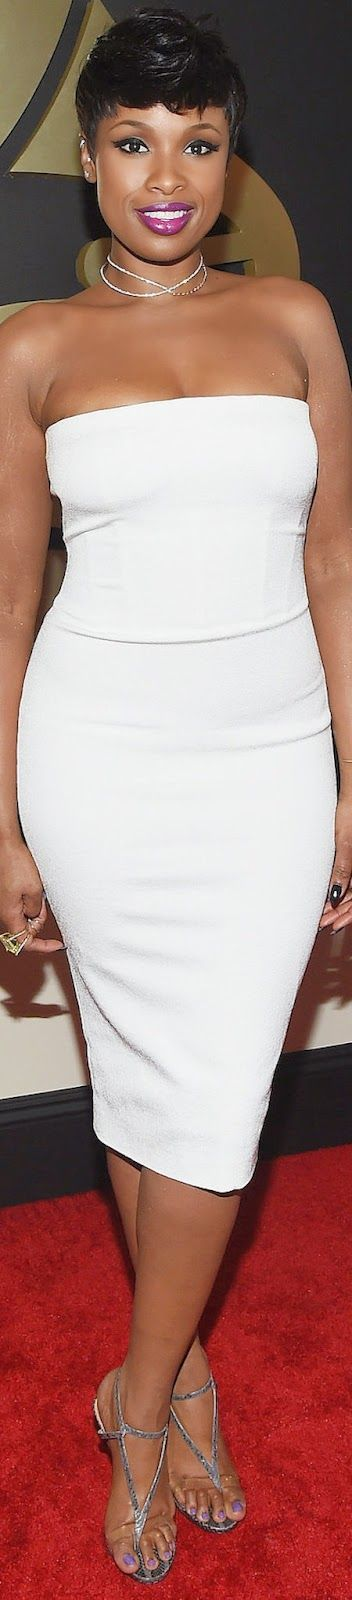 LOOKandLOVEwithLOLO: Jennifer Hudson 2015 Grammy Red Carpet Fashion